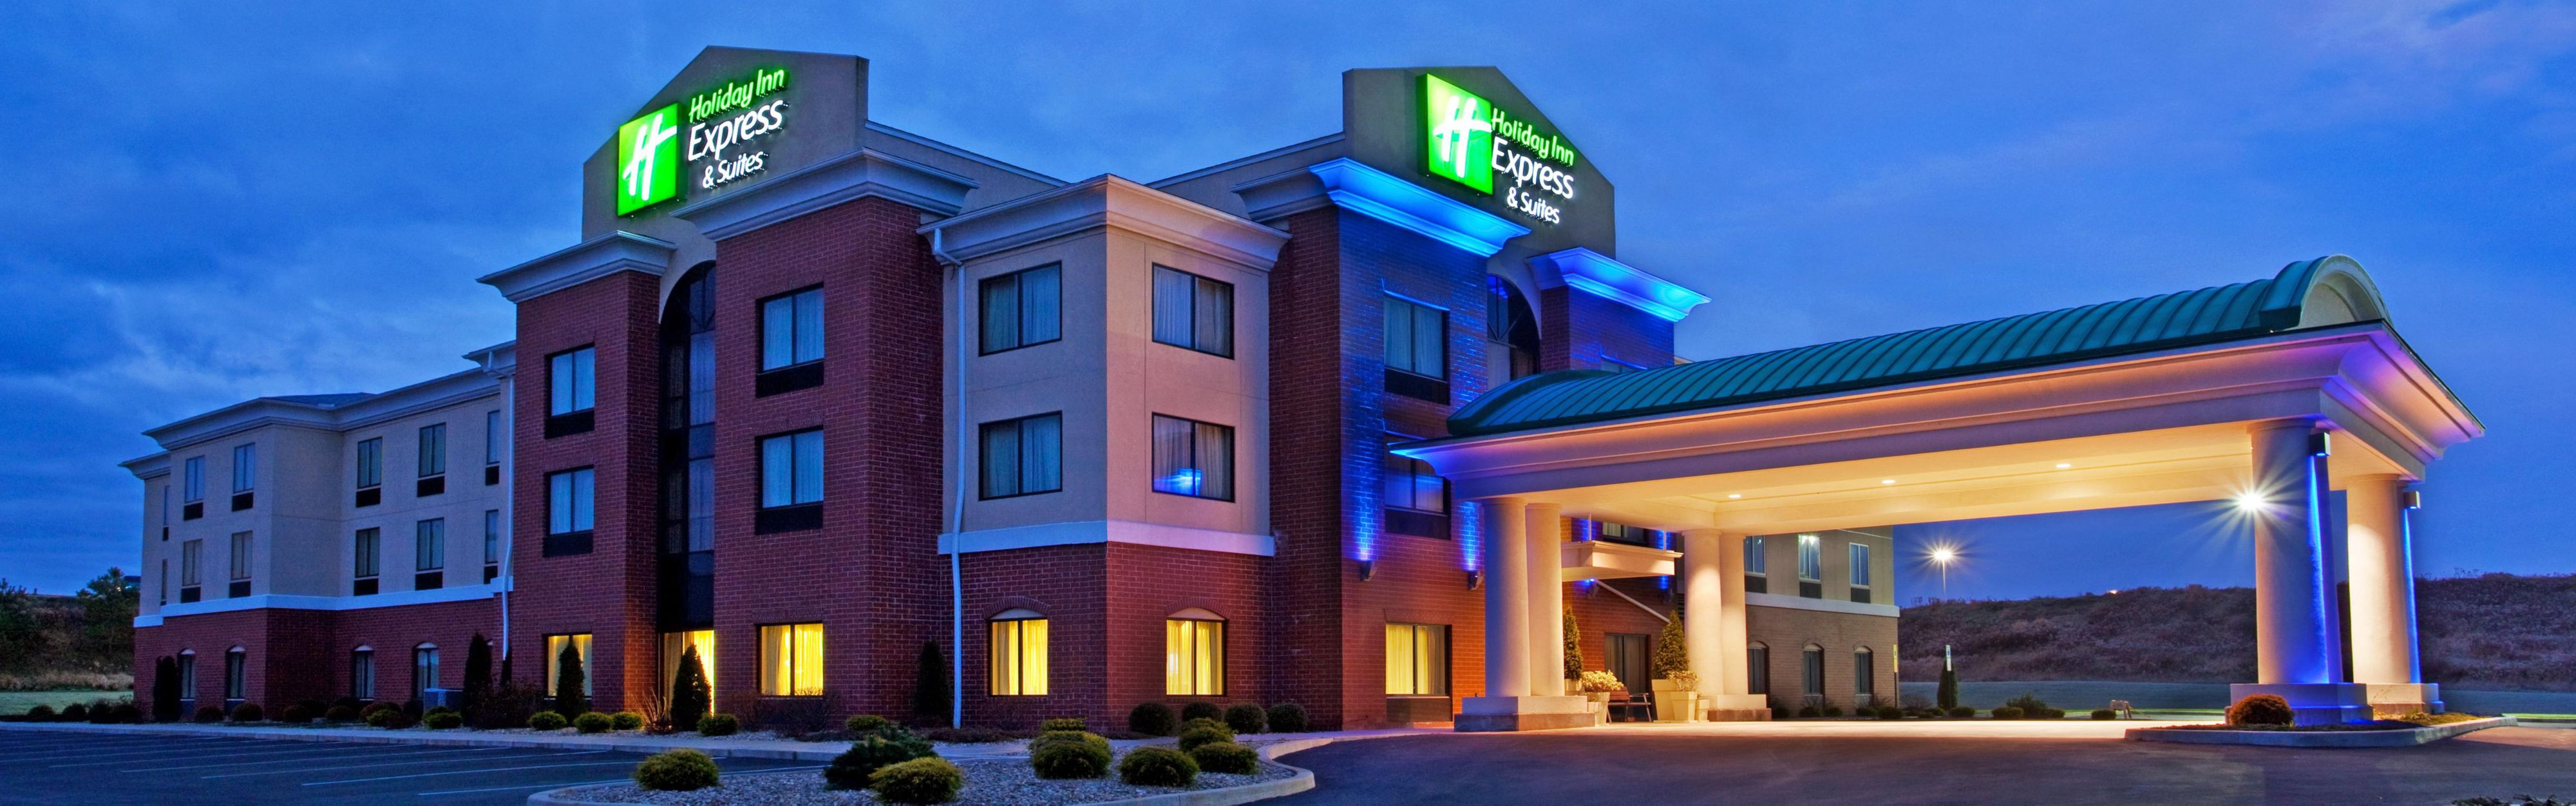 Holiday Inn Express & Suites Franklin - Oil City image 0